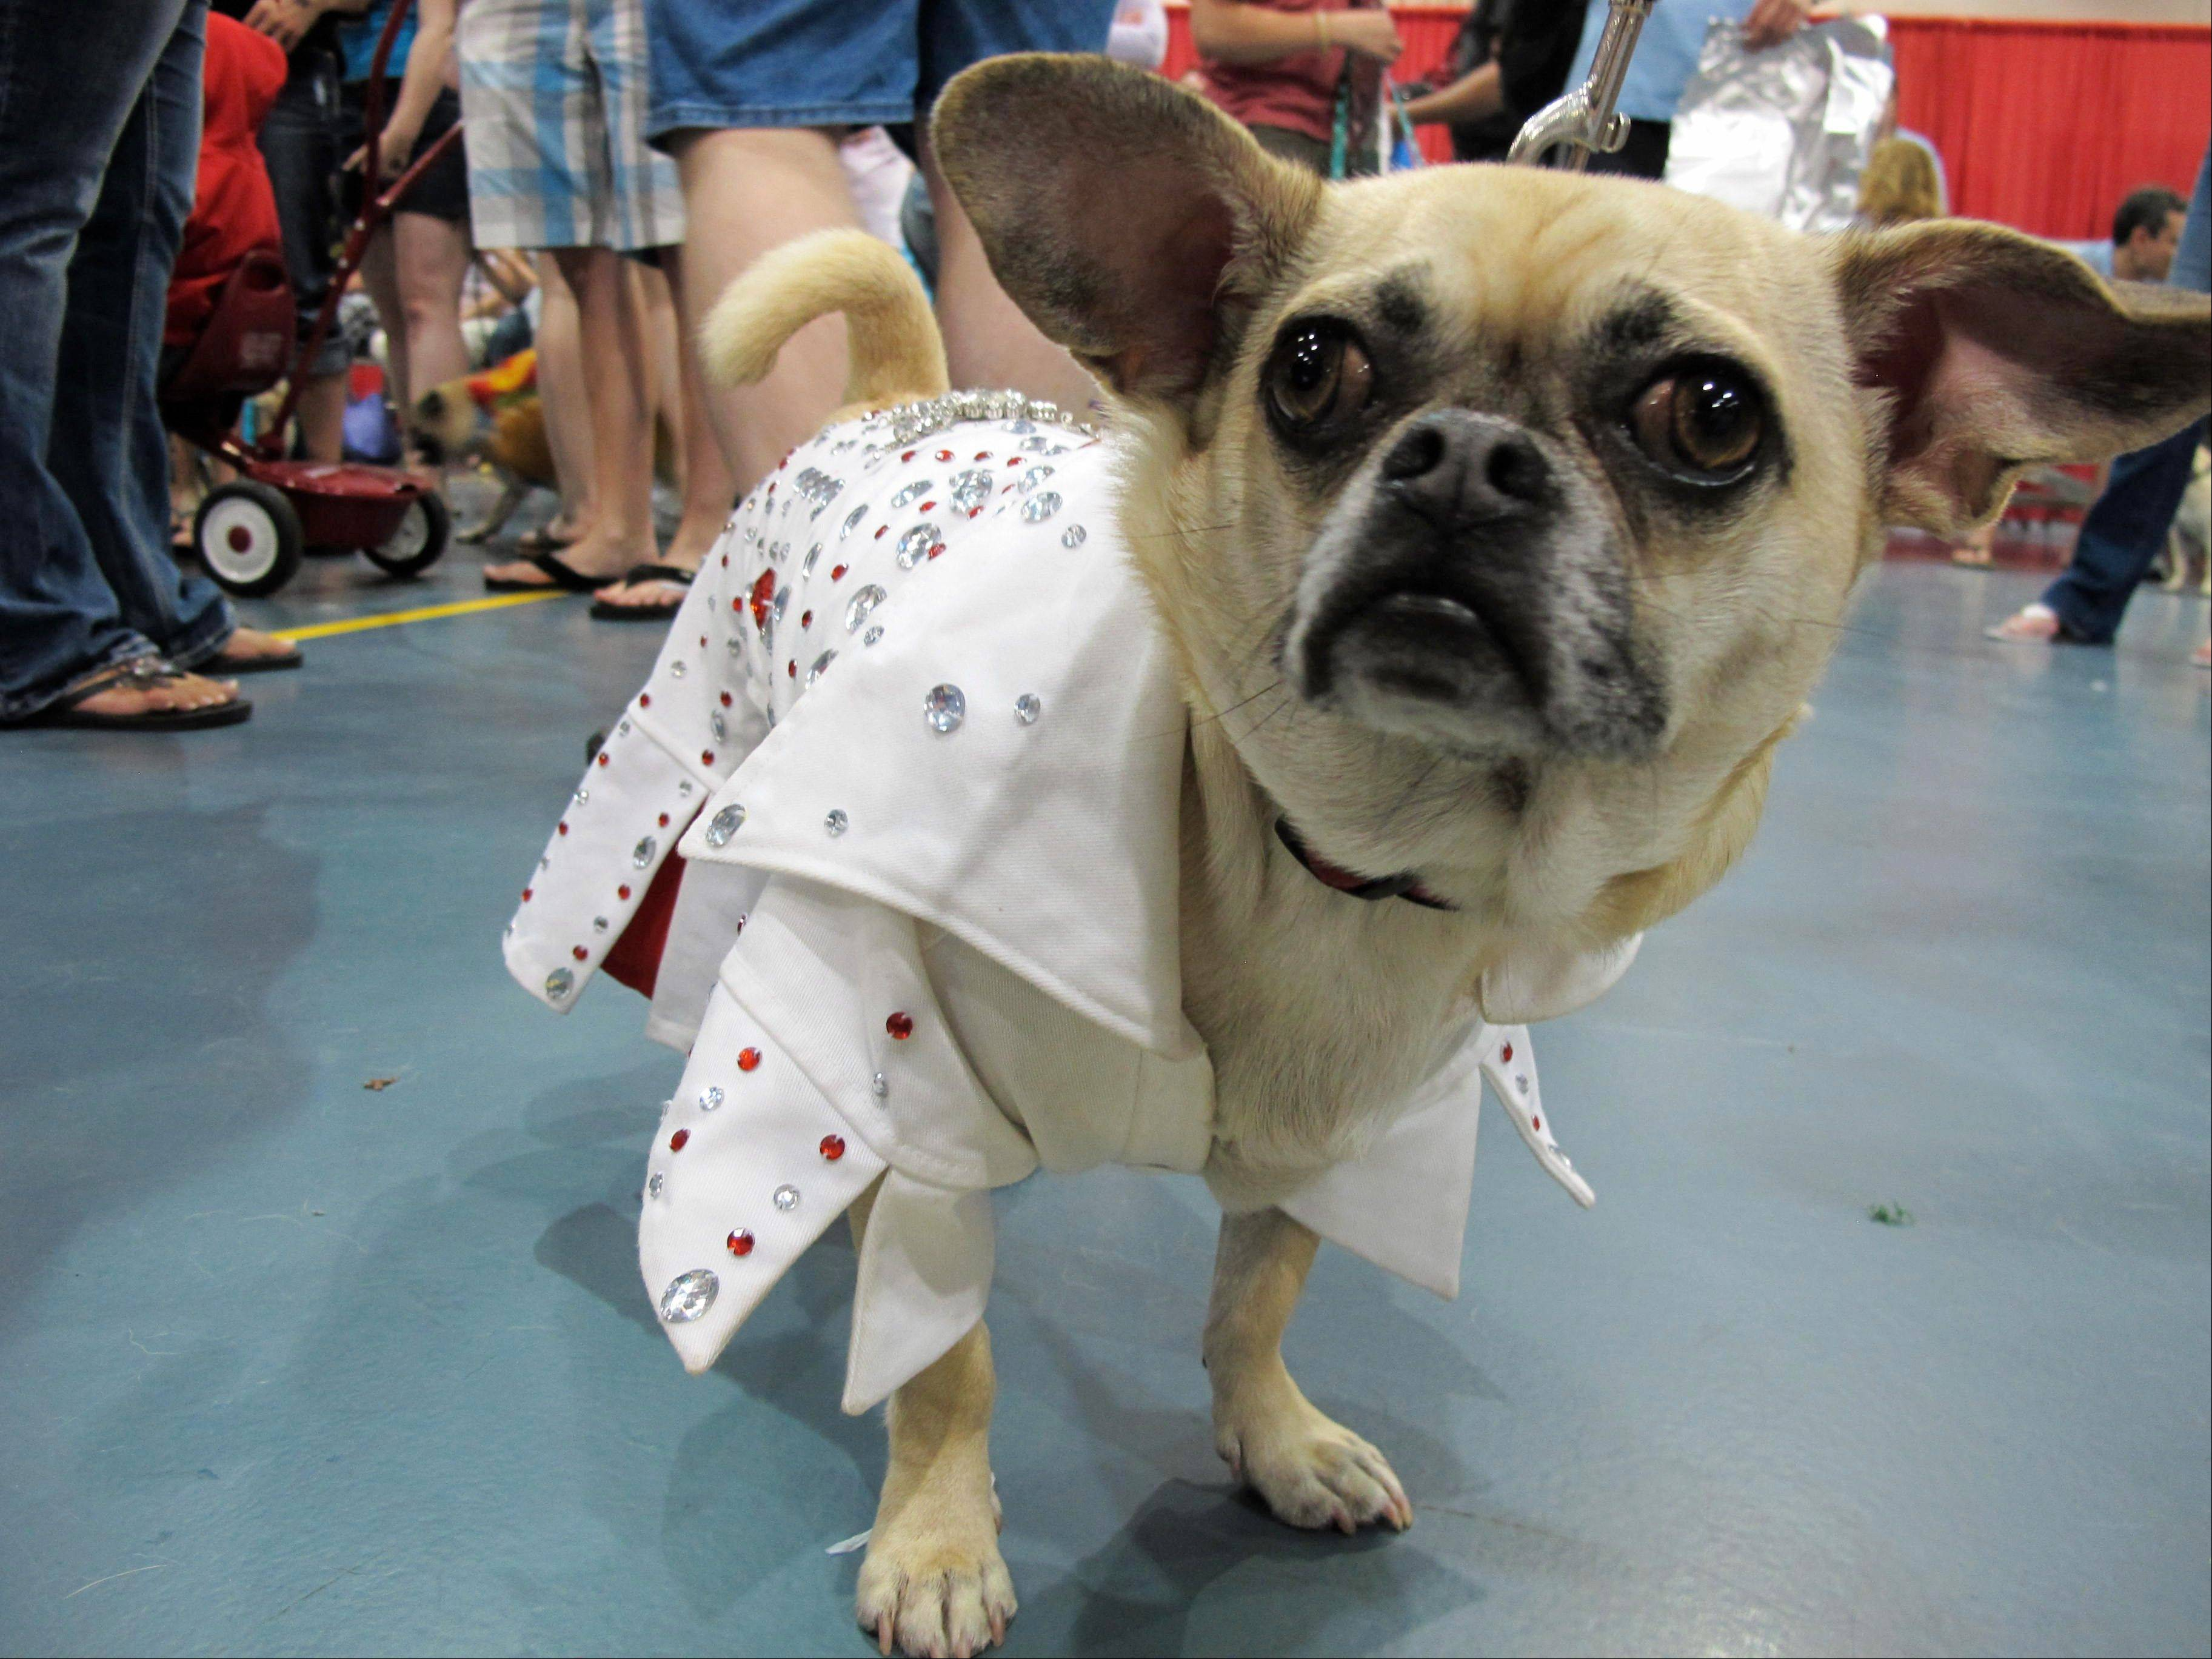 King, who is a Chihuahua-pug mix, poses in his Elvis costume at Milwaukee Pug Fest in Franklin, Wis.